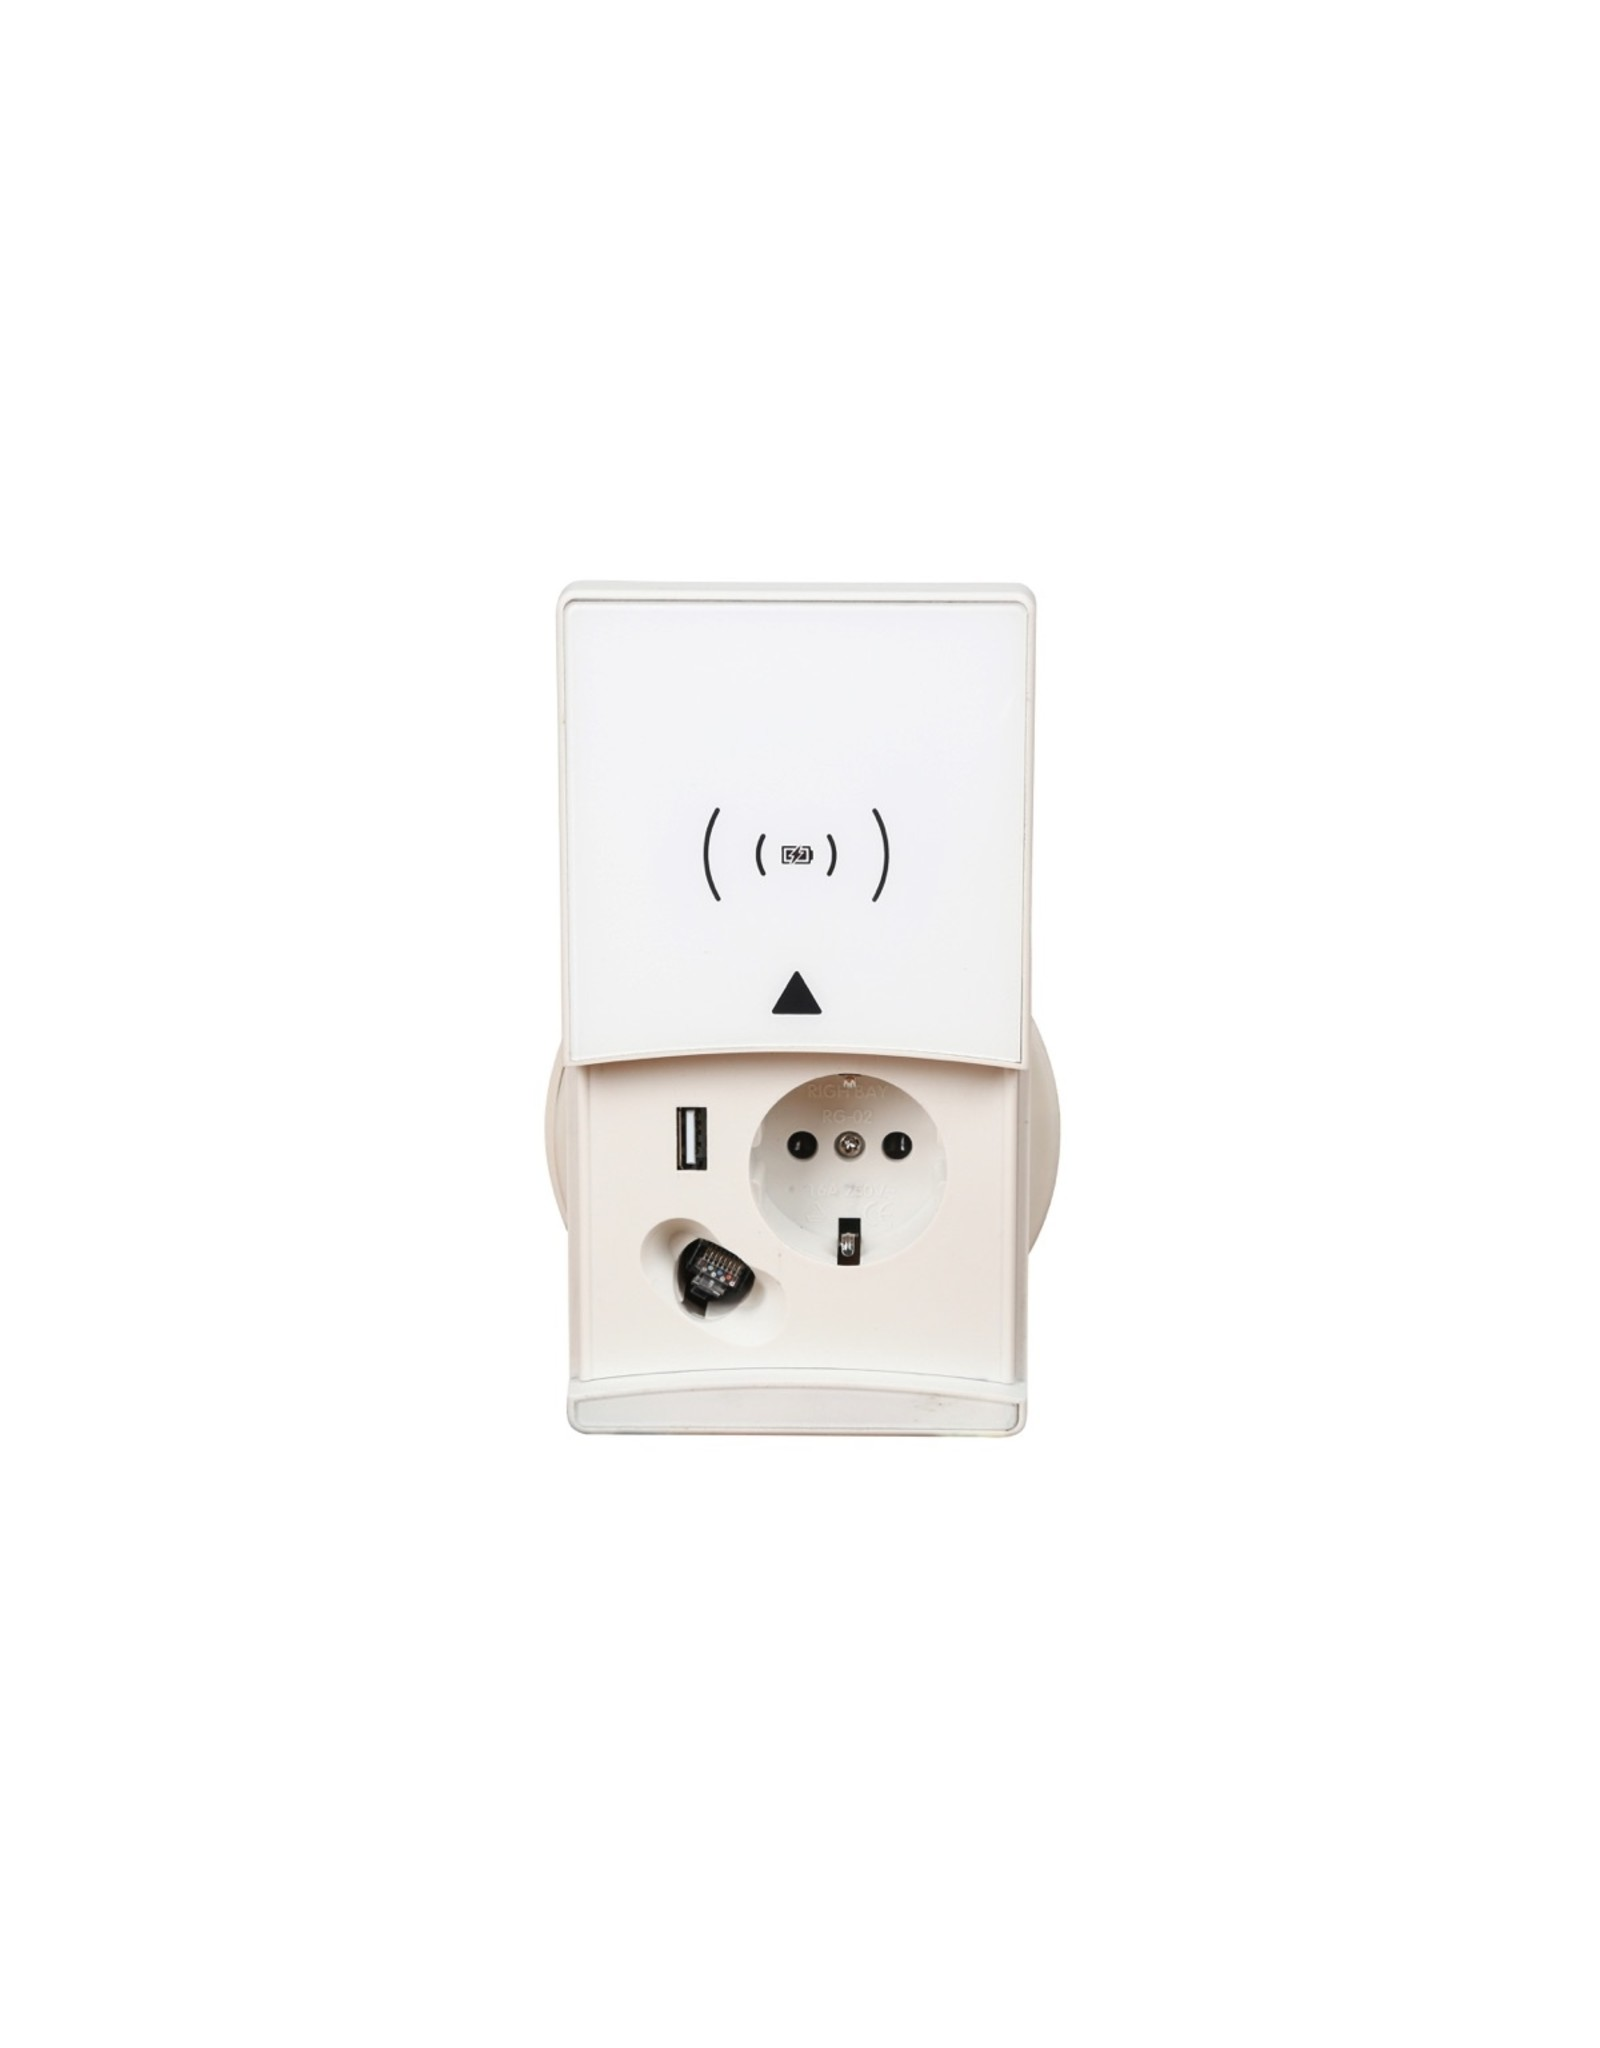 Ergo QI-charger - 230V - USB-charger - CAT6